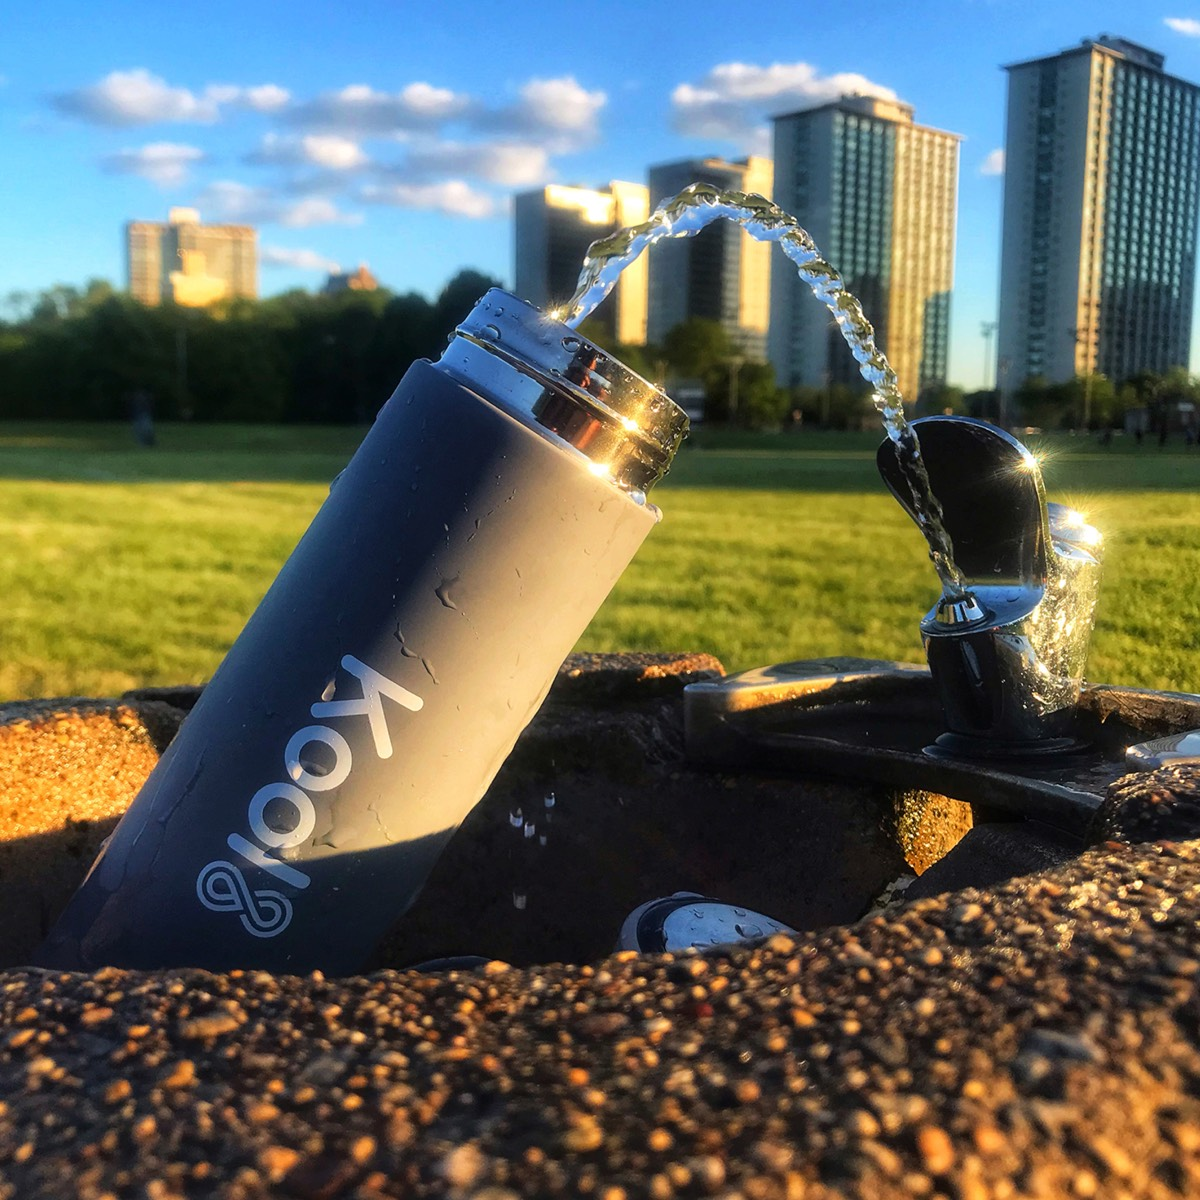 Kool8 Sleek Water Bottle